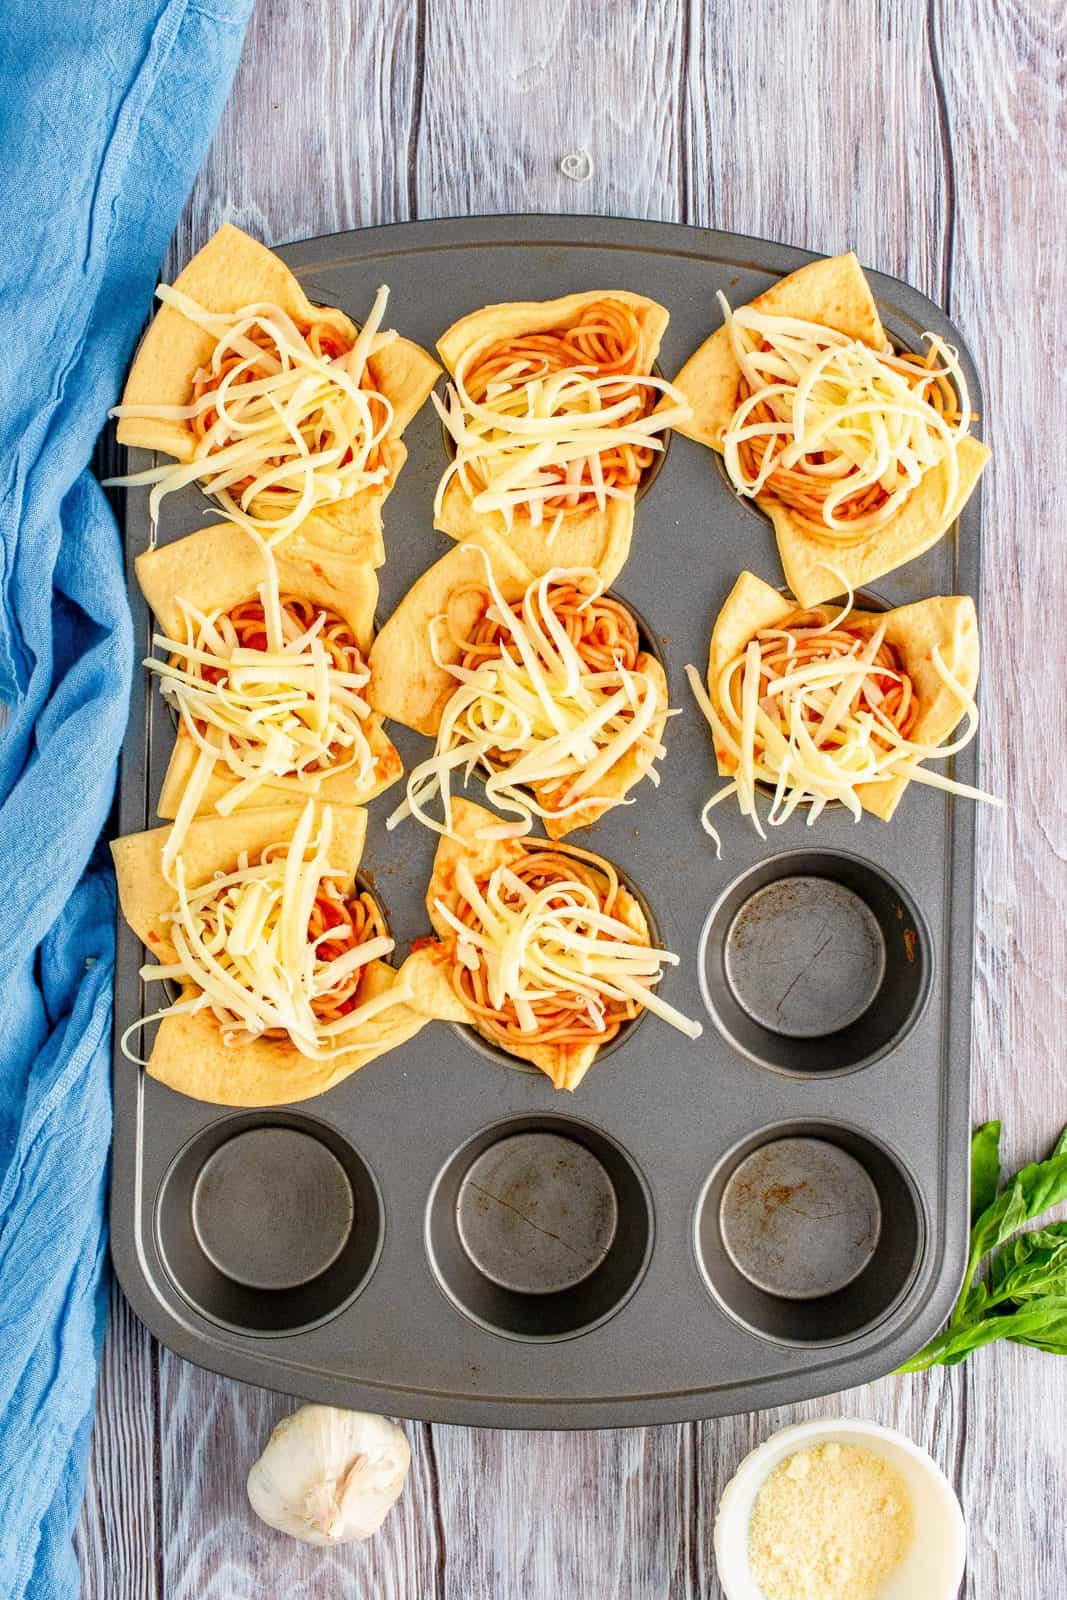 shredded mozzarella cheese added to top of spaghetti inside crescent roll cups.